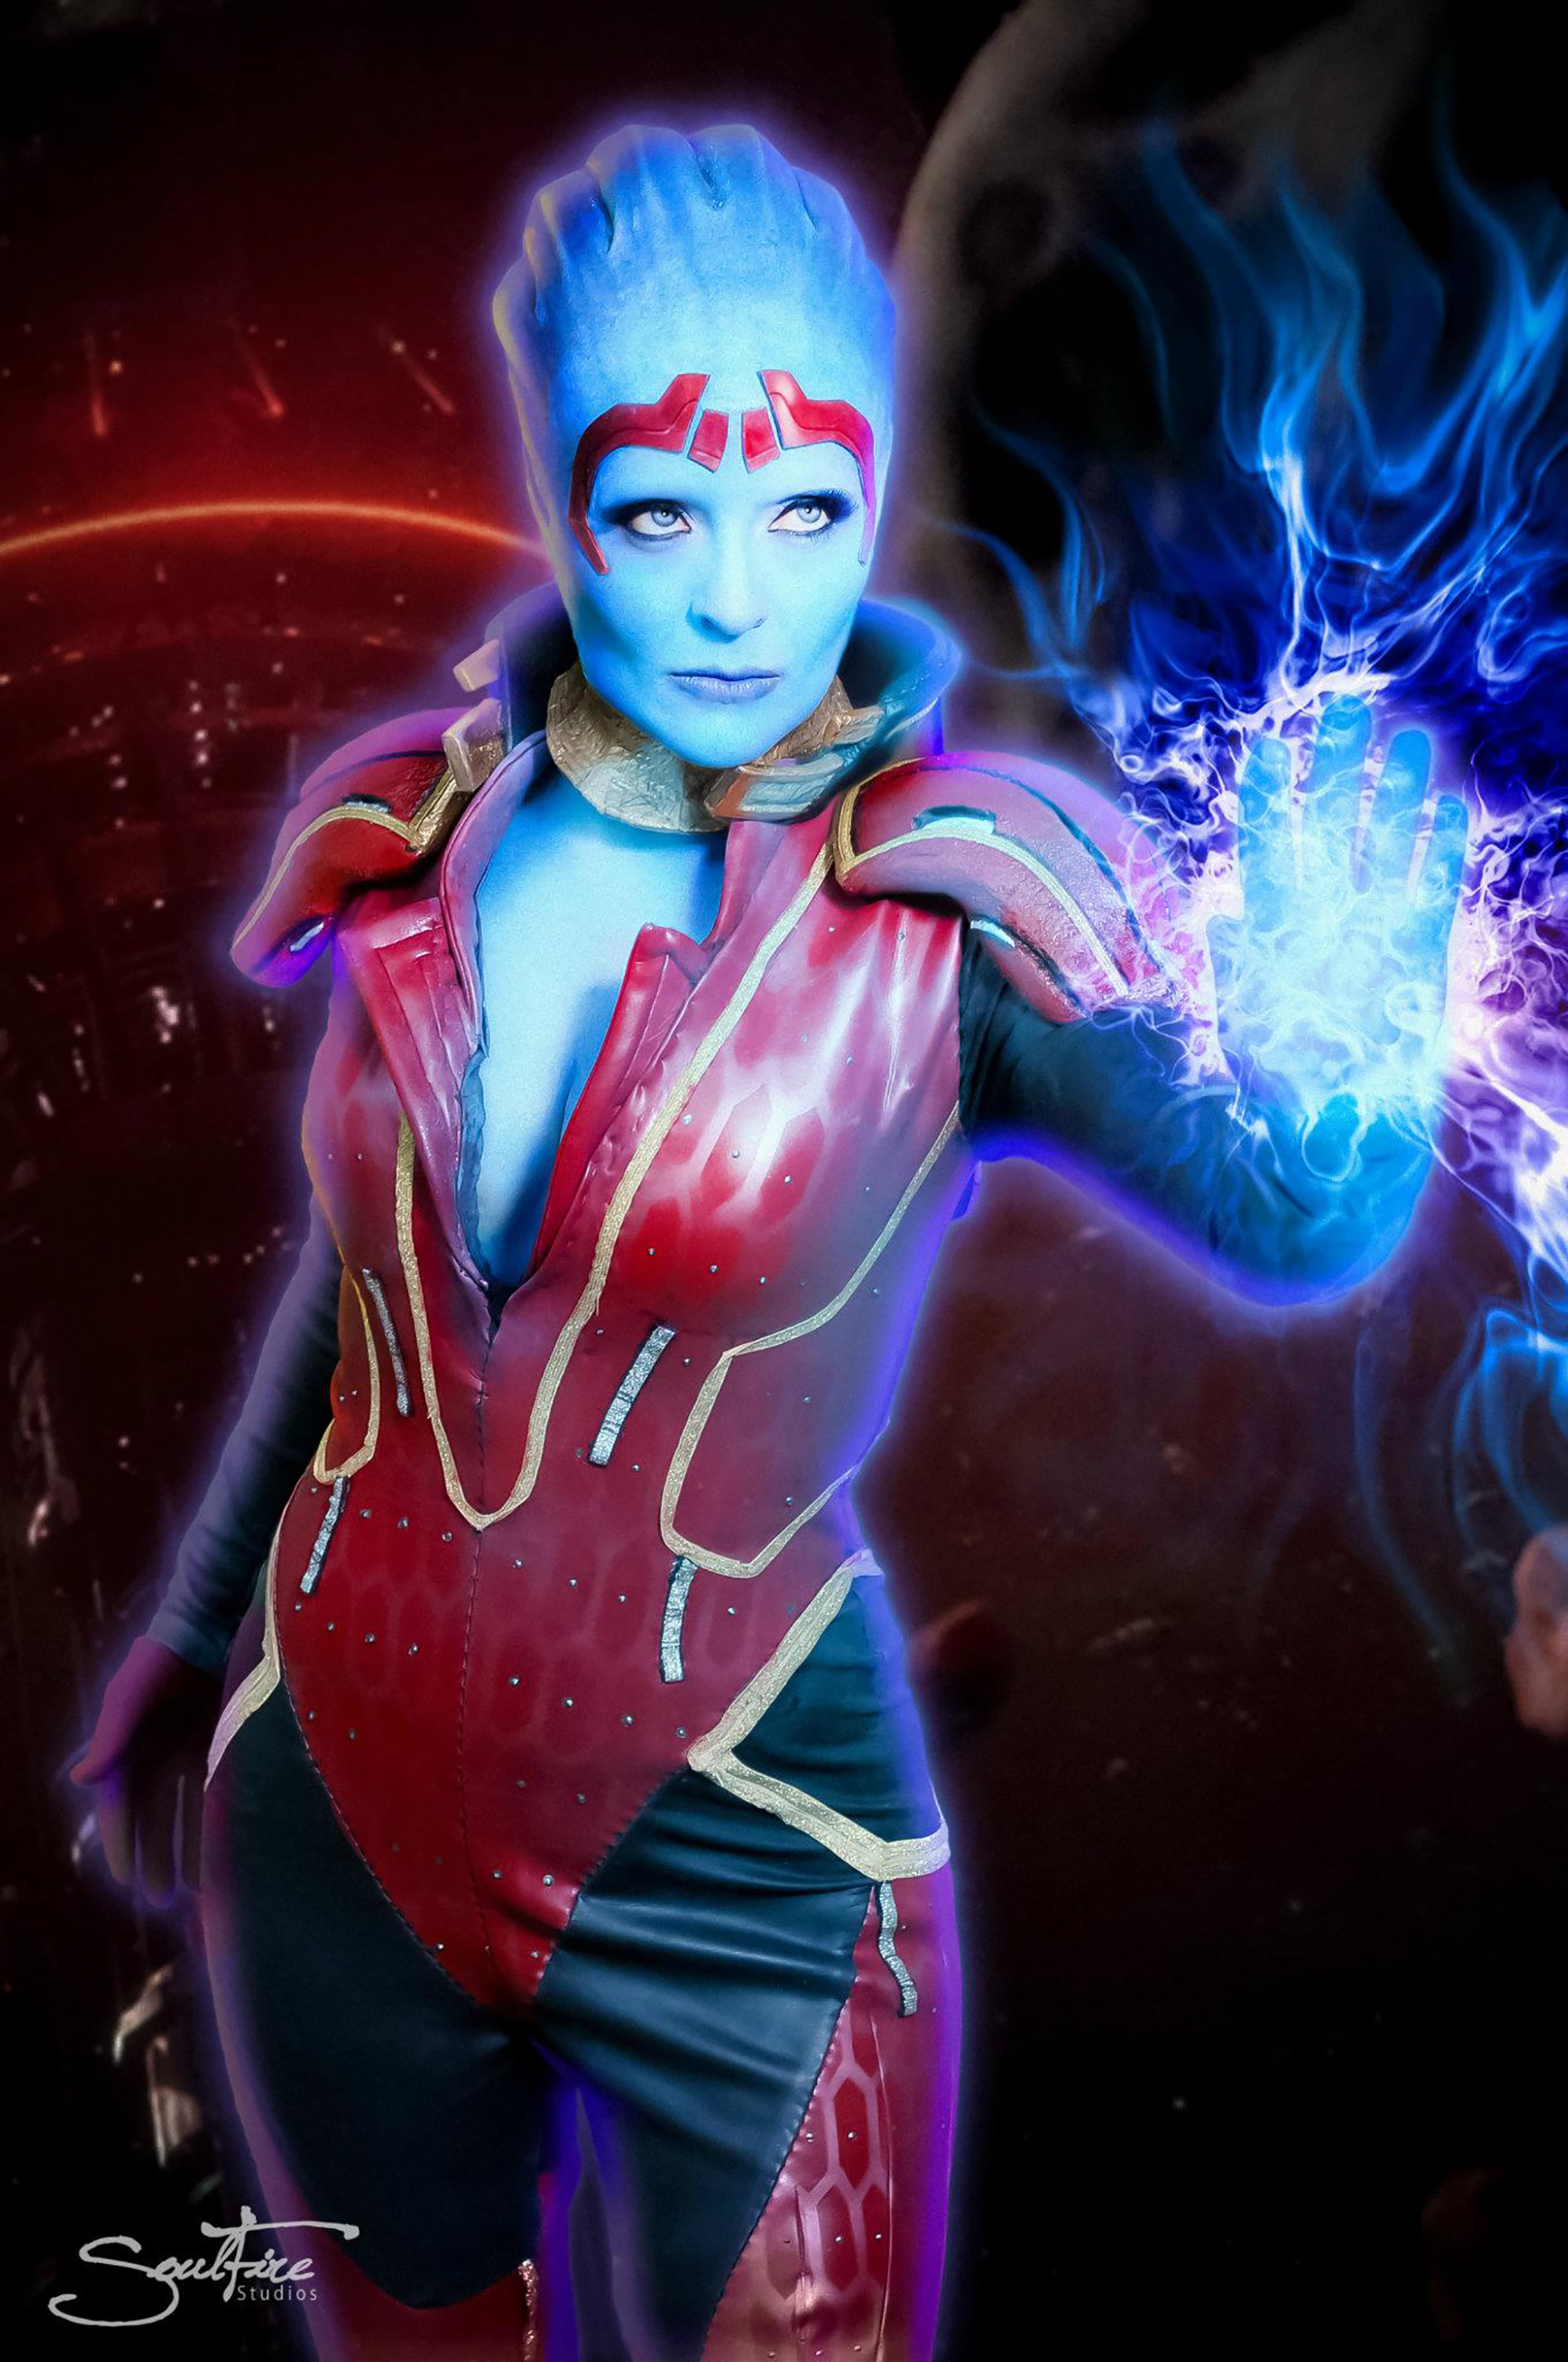 Cosplay by: Rana McAnear | Photo by: Soulfire Photography